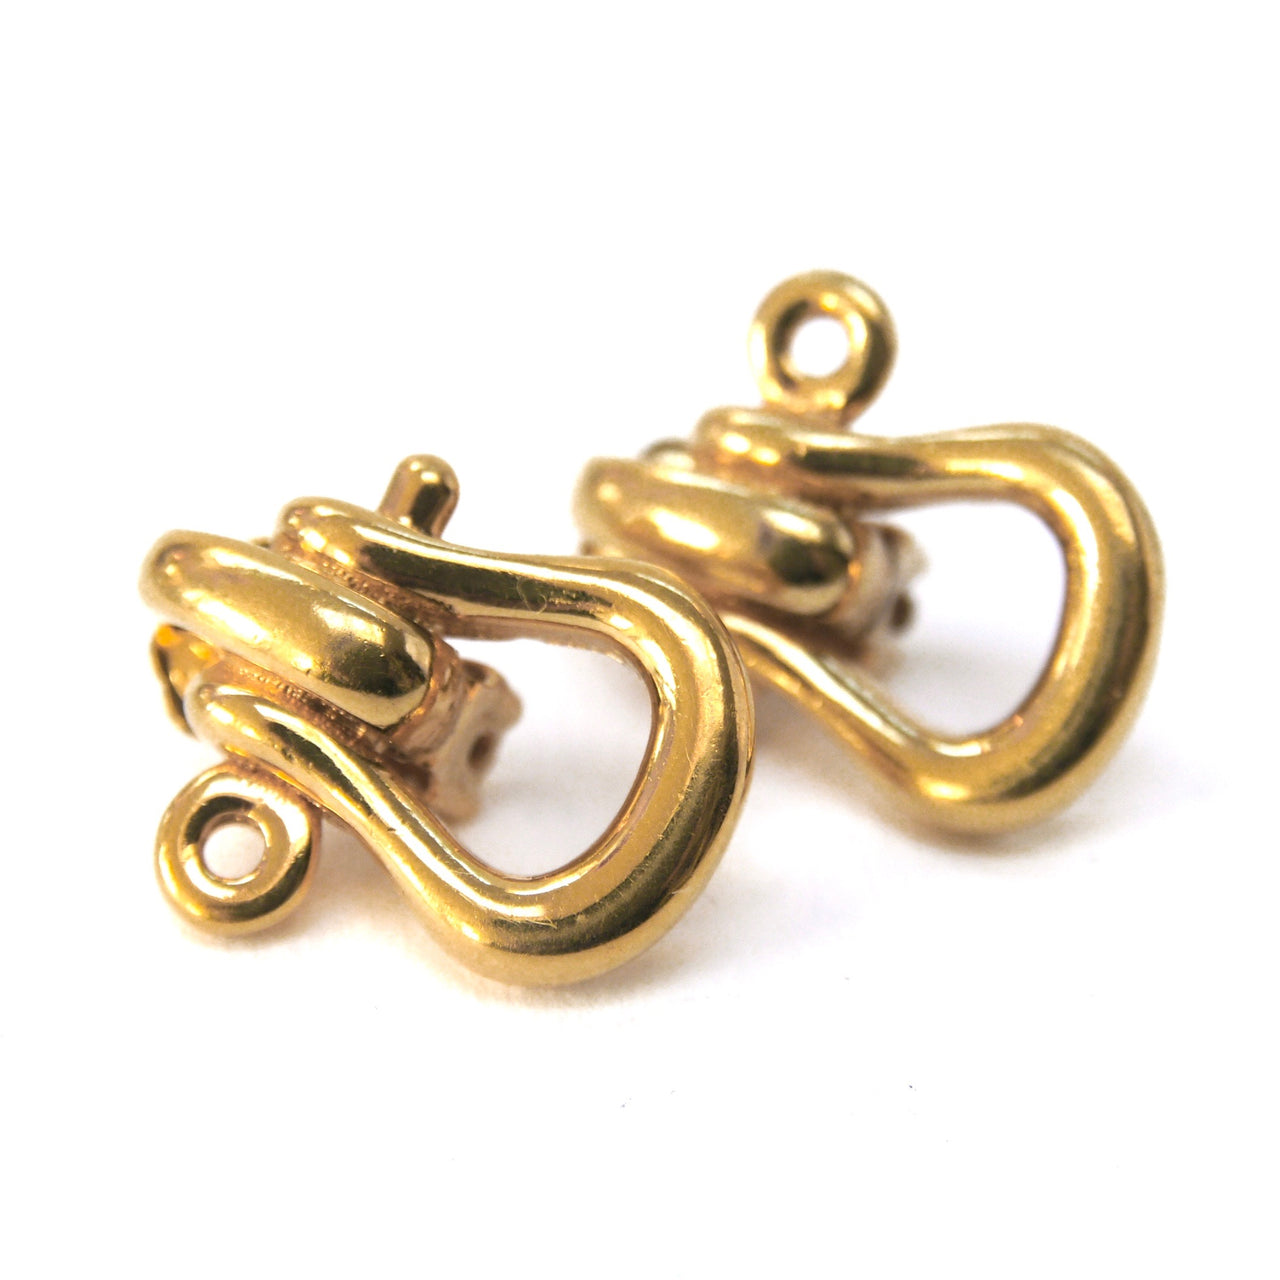 Eclectica Vintage Jewellery | UK | Burberrys Clip On Earrings, Gold Plate